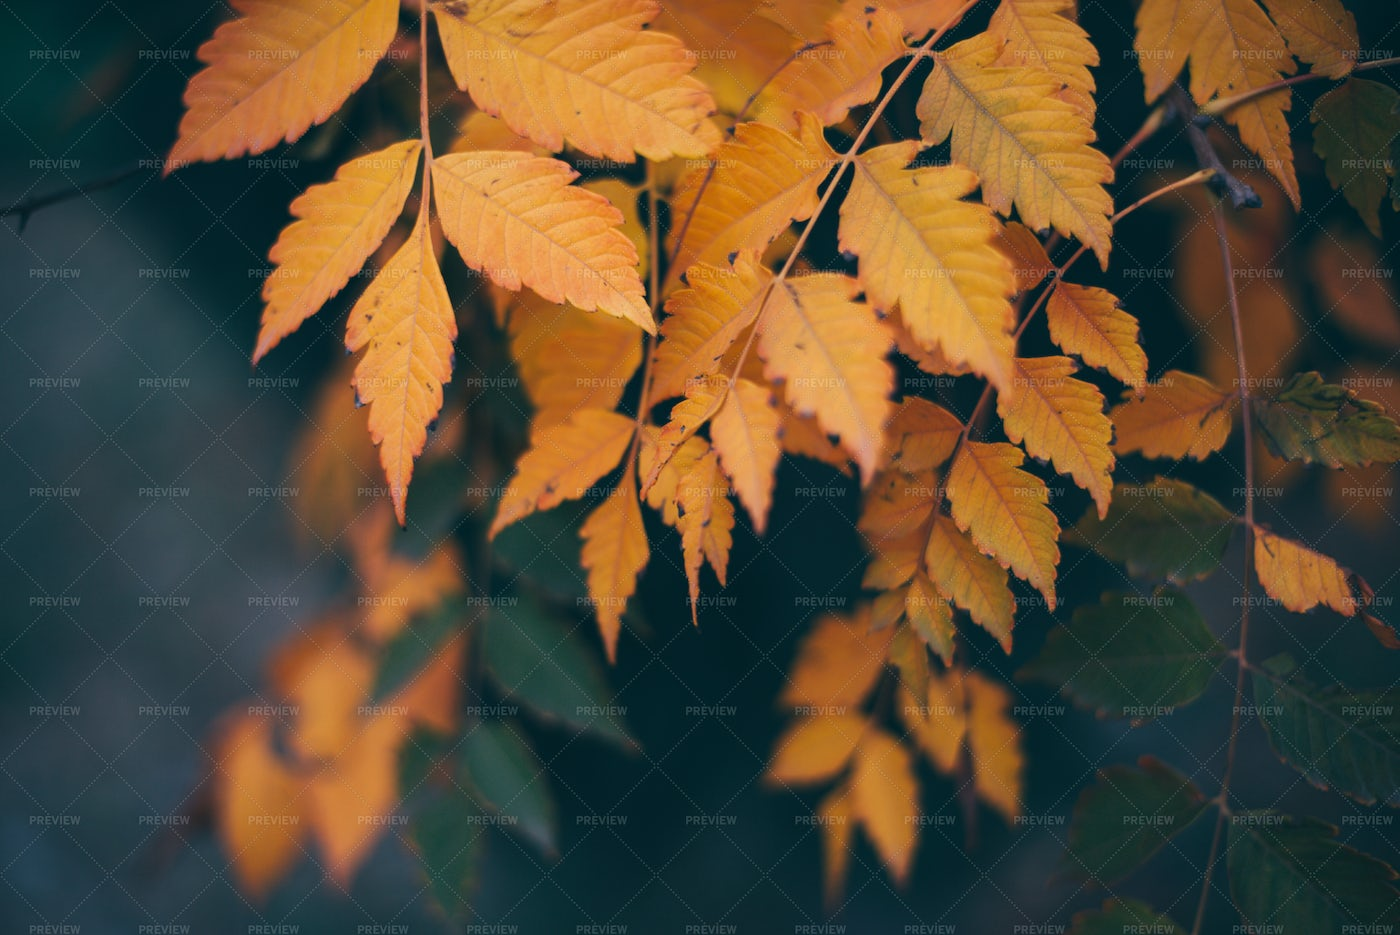 Leaves In Vintage Color: Stock Photos